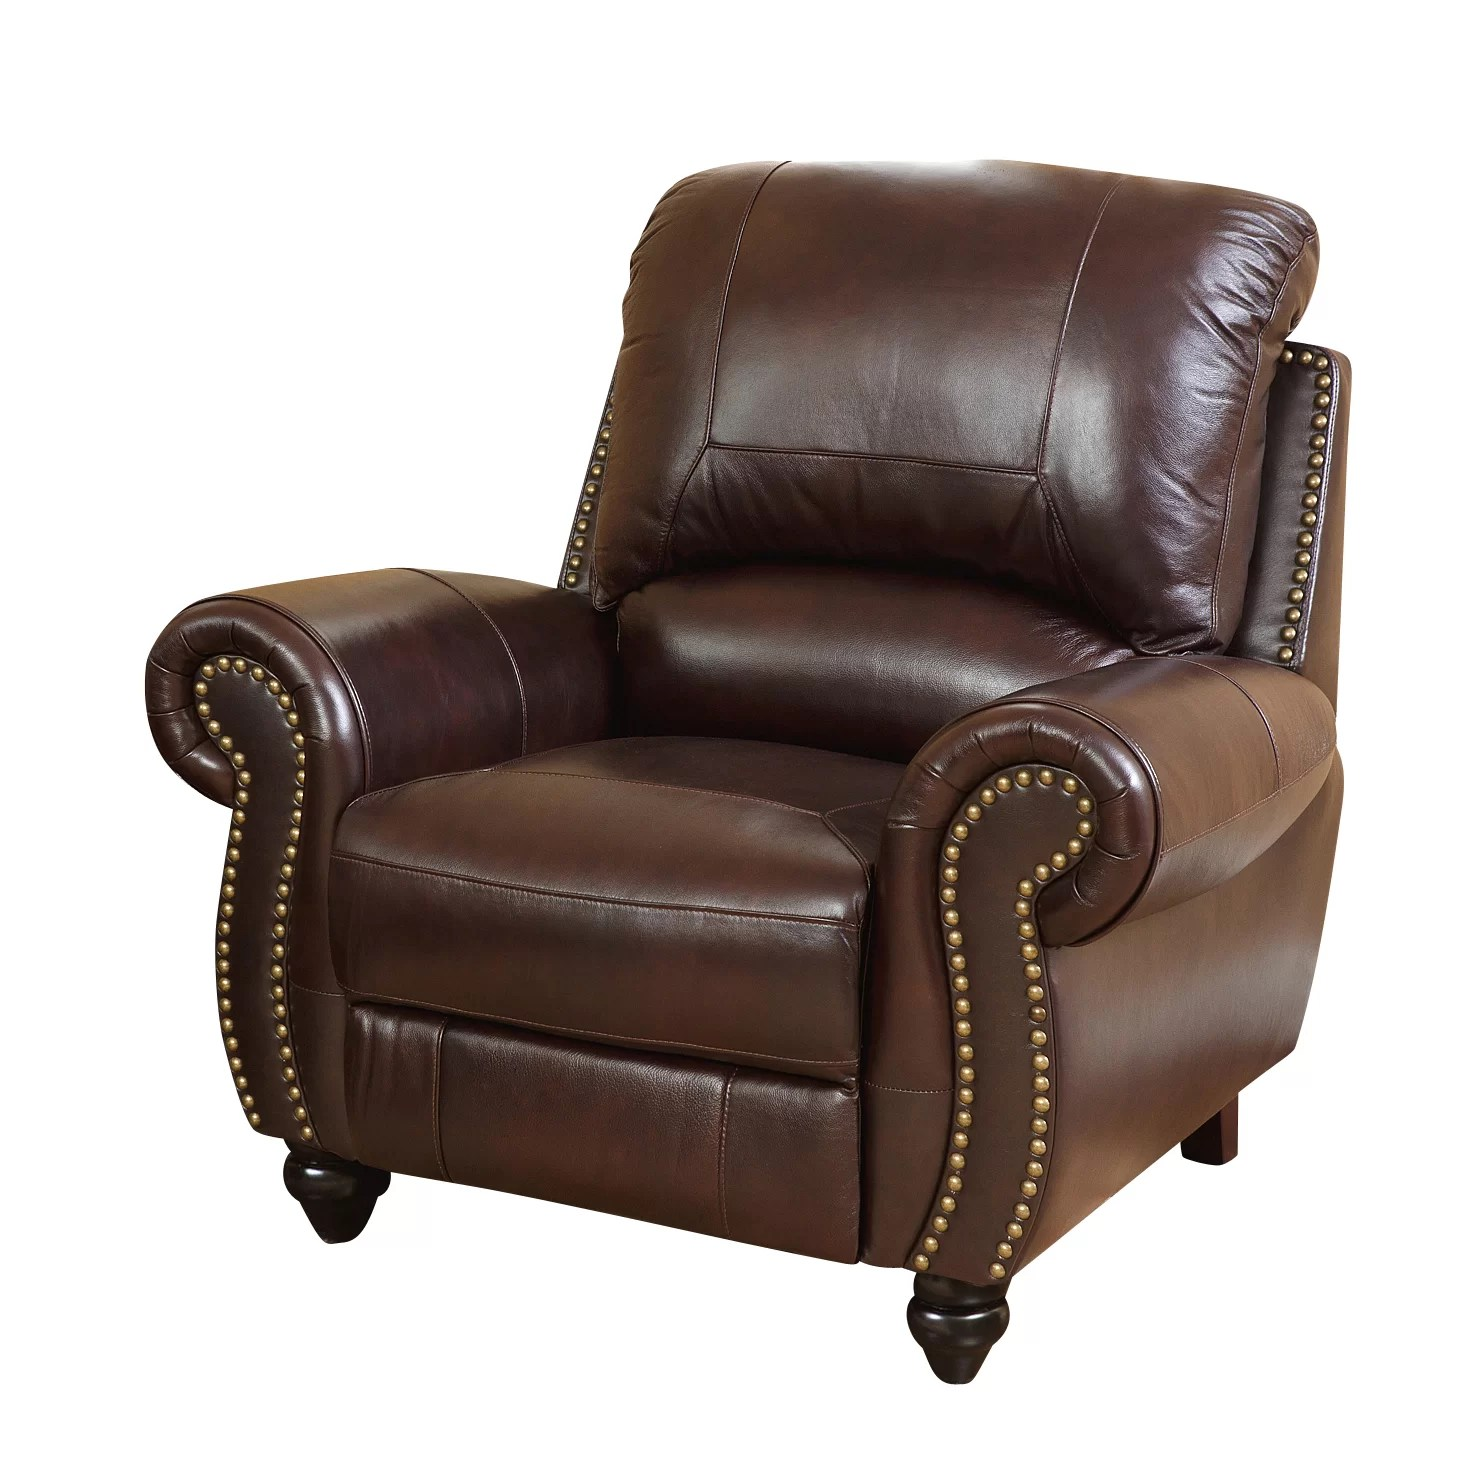 reclining arm chair yankee stadium chairs darby home co kahle leather recliner and reviews